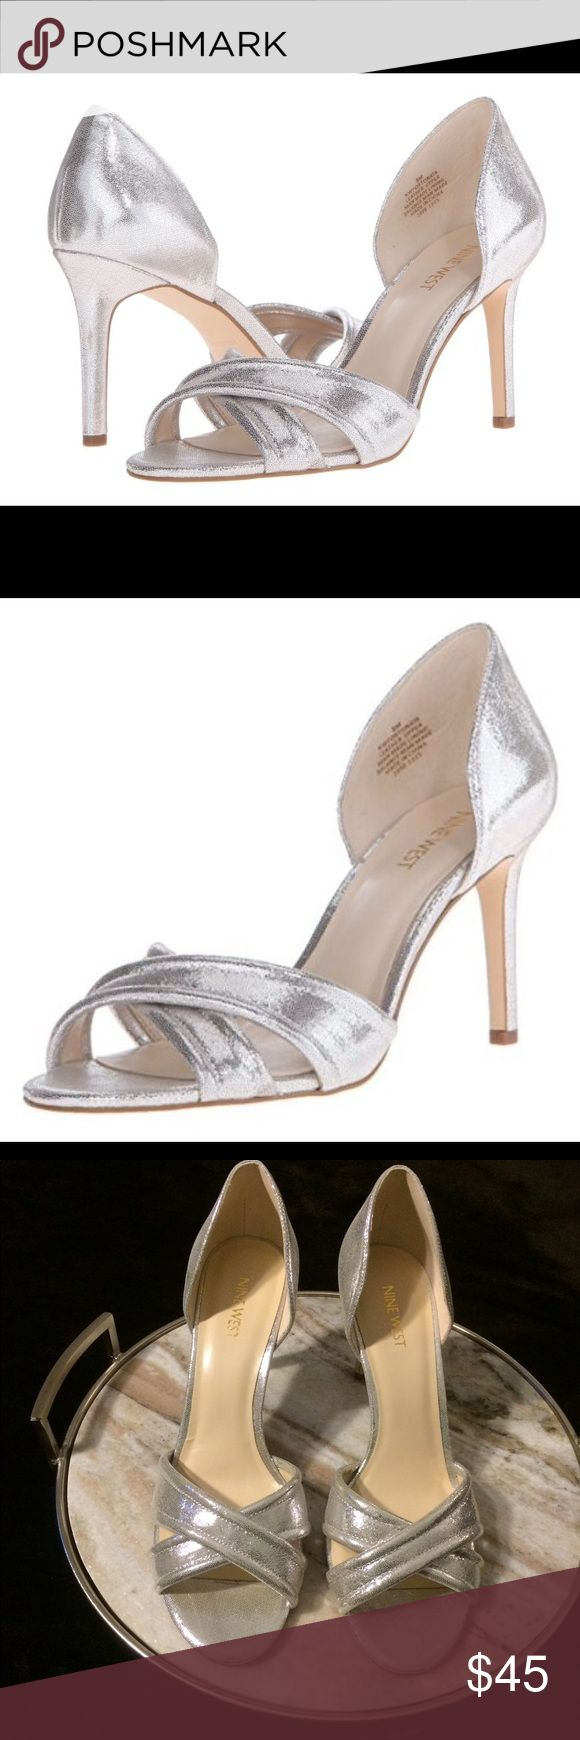 Nine West Women's Fortunata Metallic Silver Pump Like new Silver metallic dress pumps/heels are perfect for a after 5 casual look, for a wedding or simply paired with a cute dress. Hard to find size. No wear on the inner or outer soles. Ready to wear. Interested? Like, share, bundle, buy! 🎀 Nine West Shoes Heels